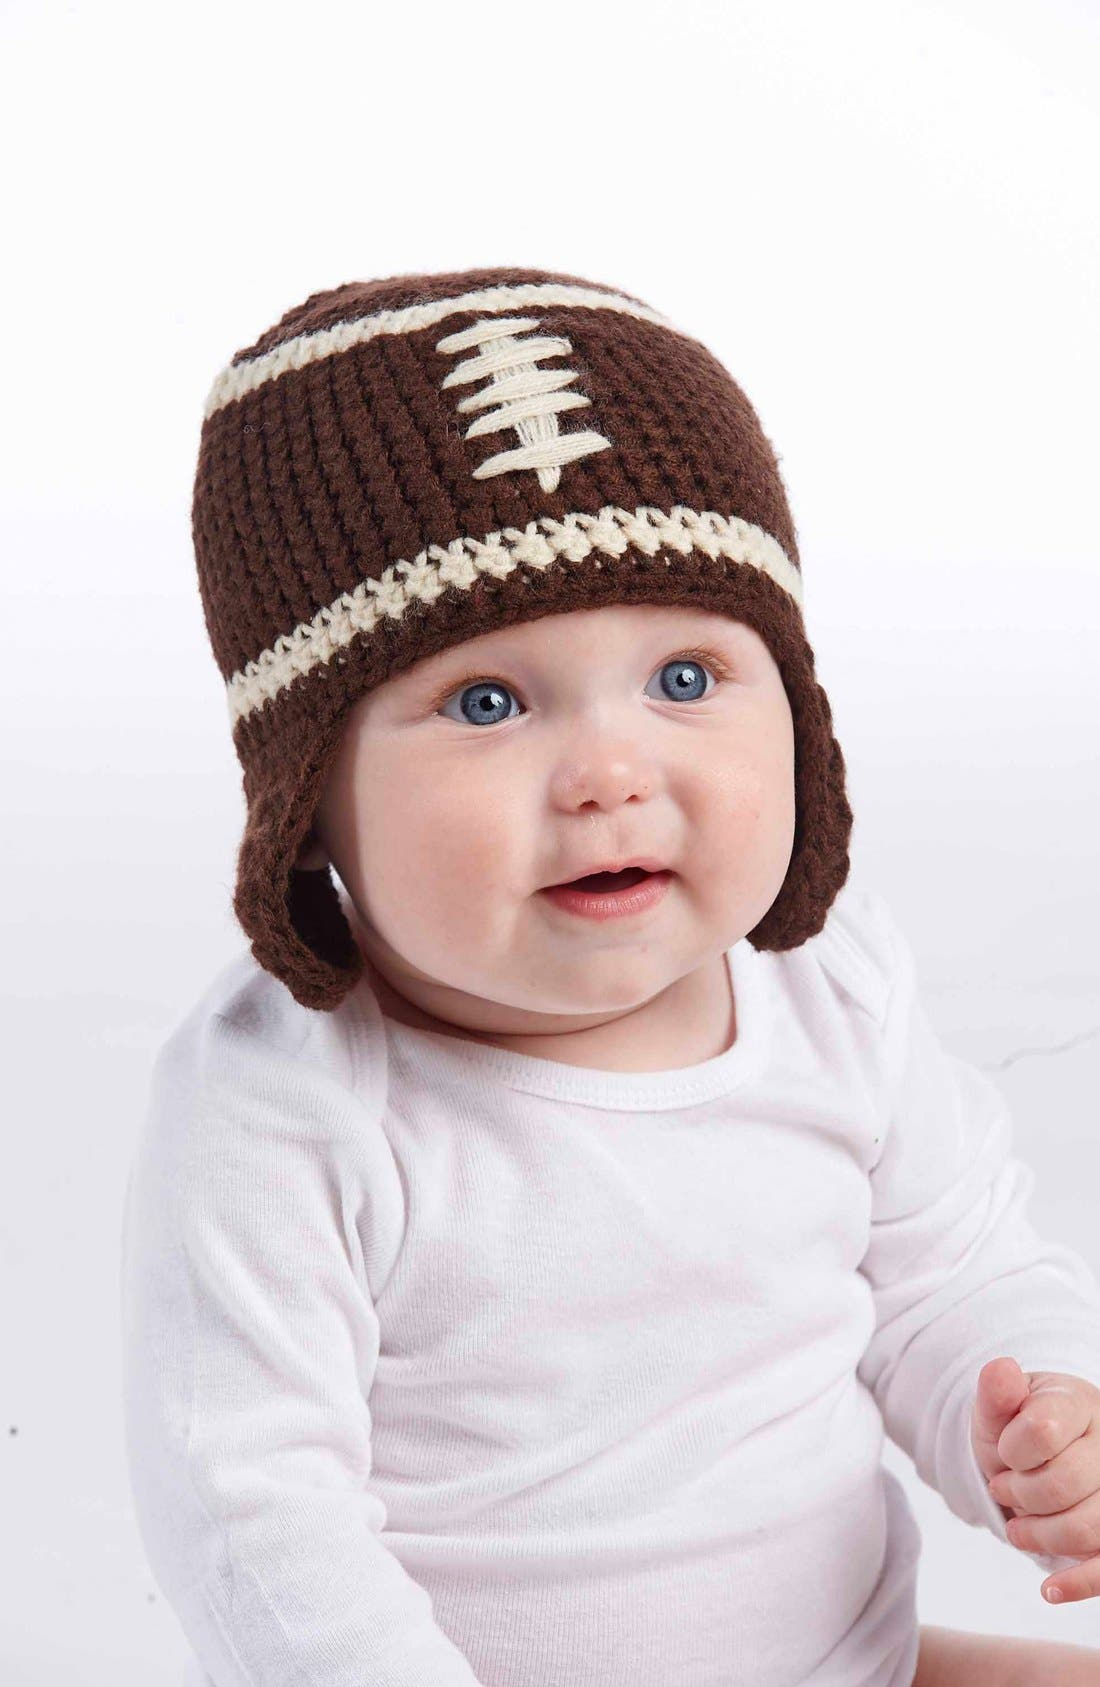 Alternate Image 1 Selected - Mud Pie Knit Football Hat (Baby)